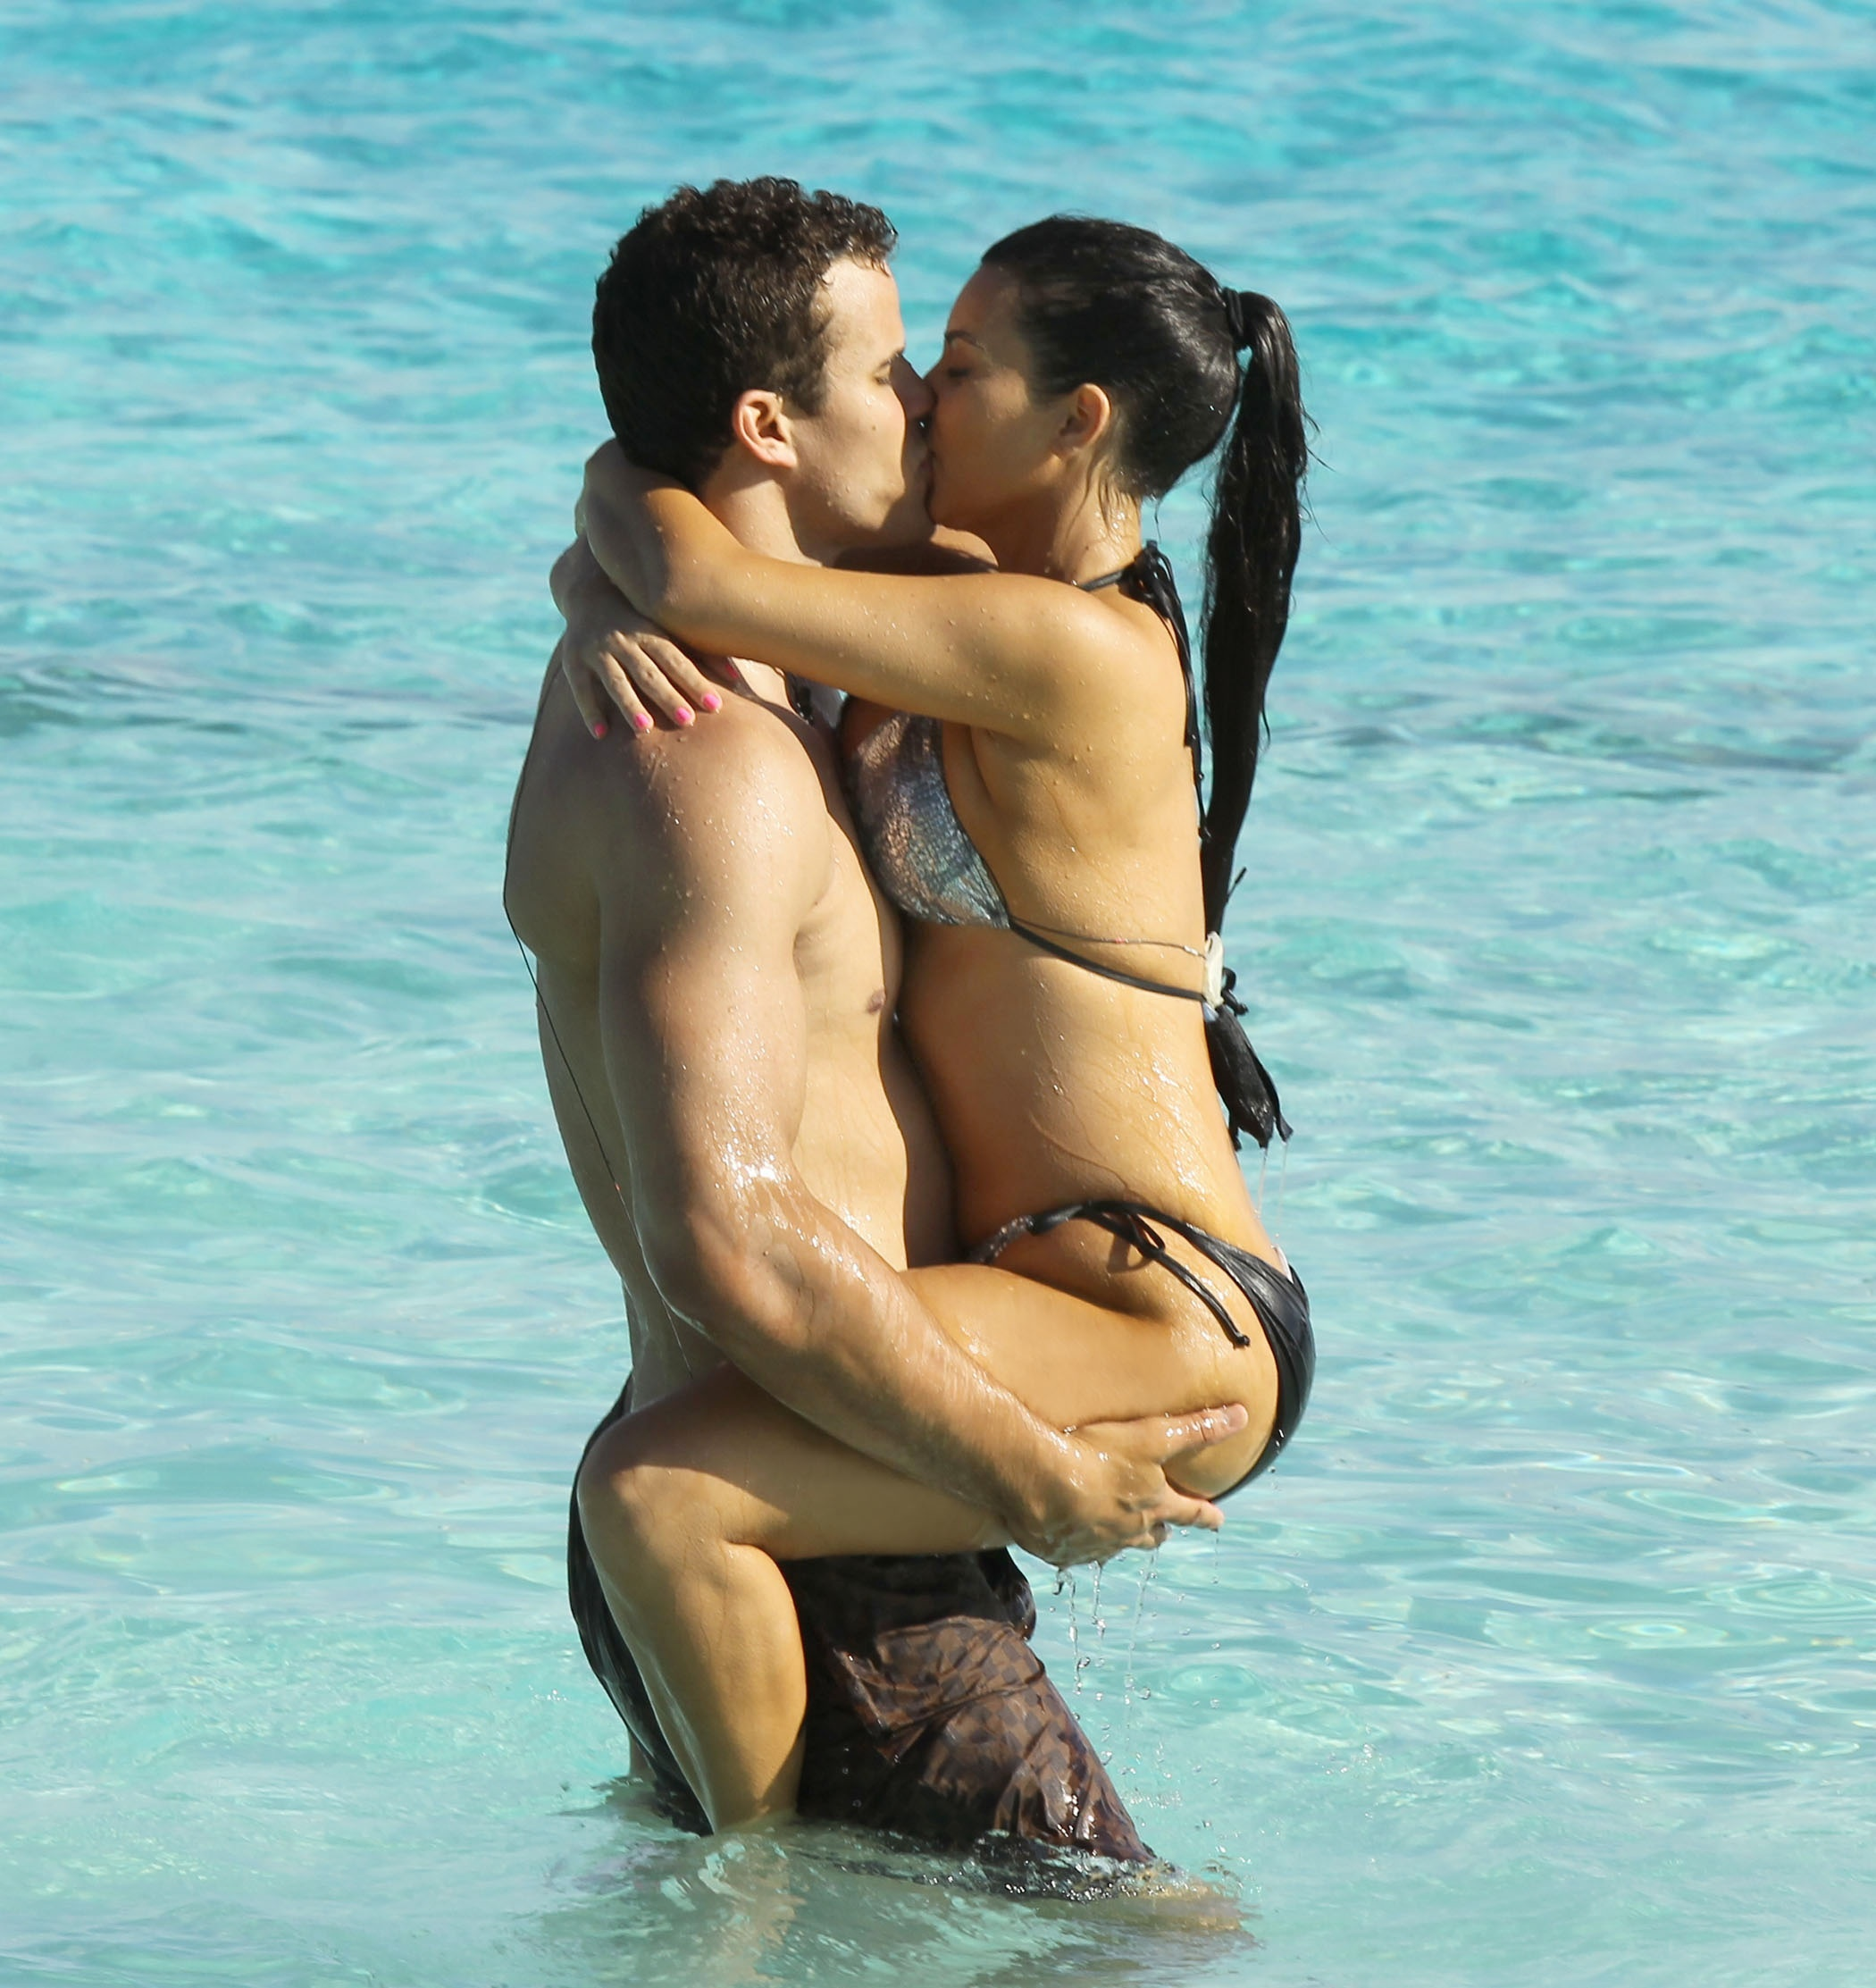 Kim Kardashian and Kris Humphries in Bora Bora